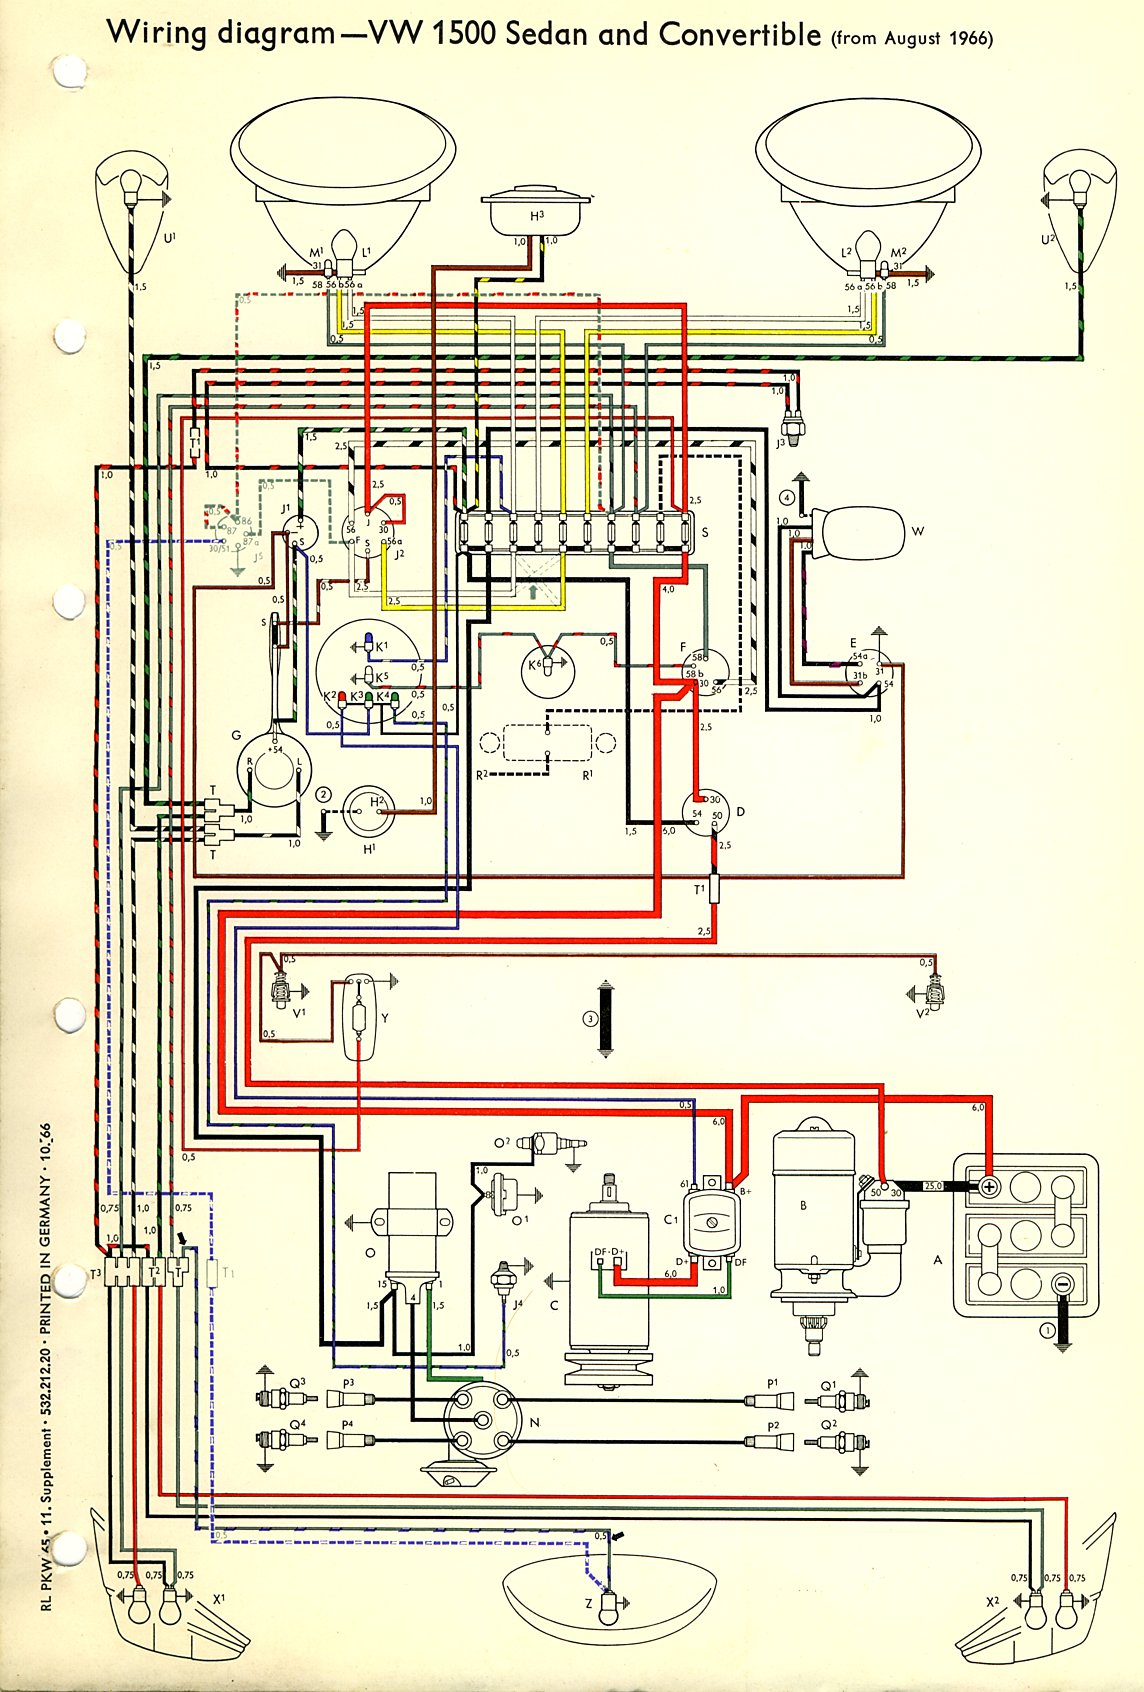 Type 1 Wiring Diagrams Additional Diagram For The 1950 Chevrolet Convertible